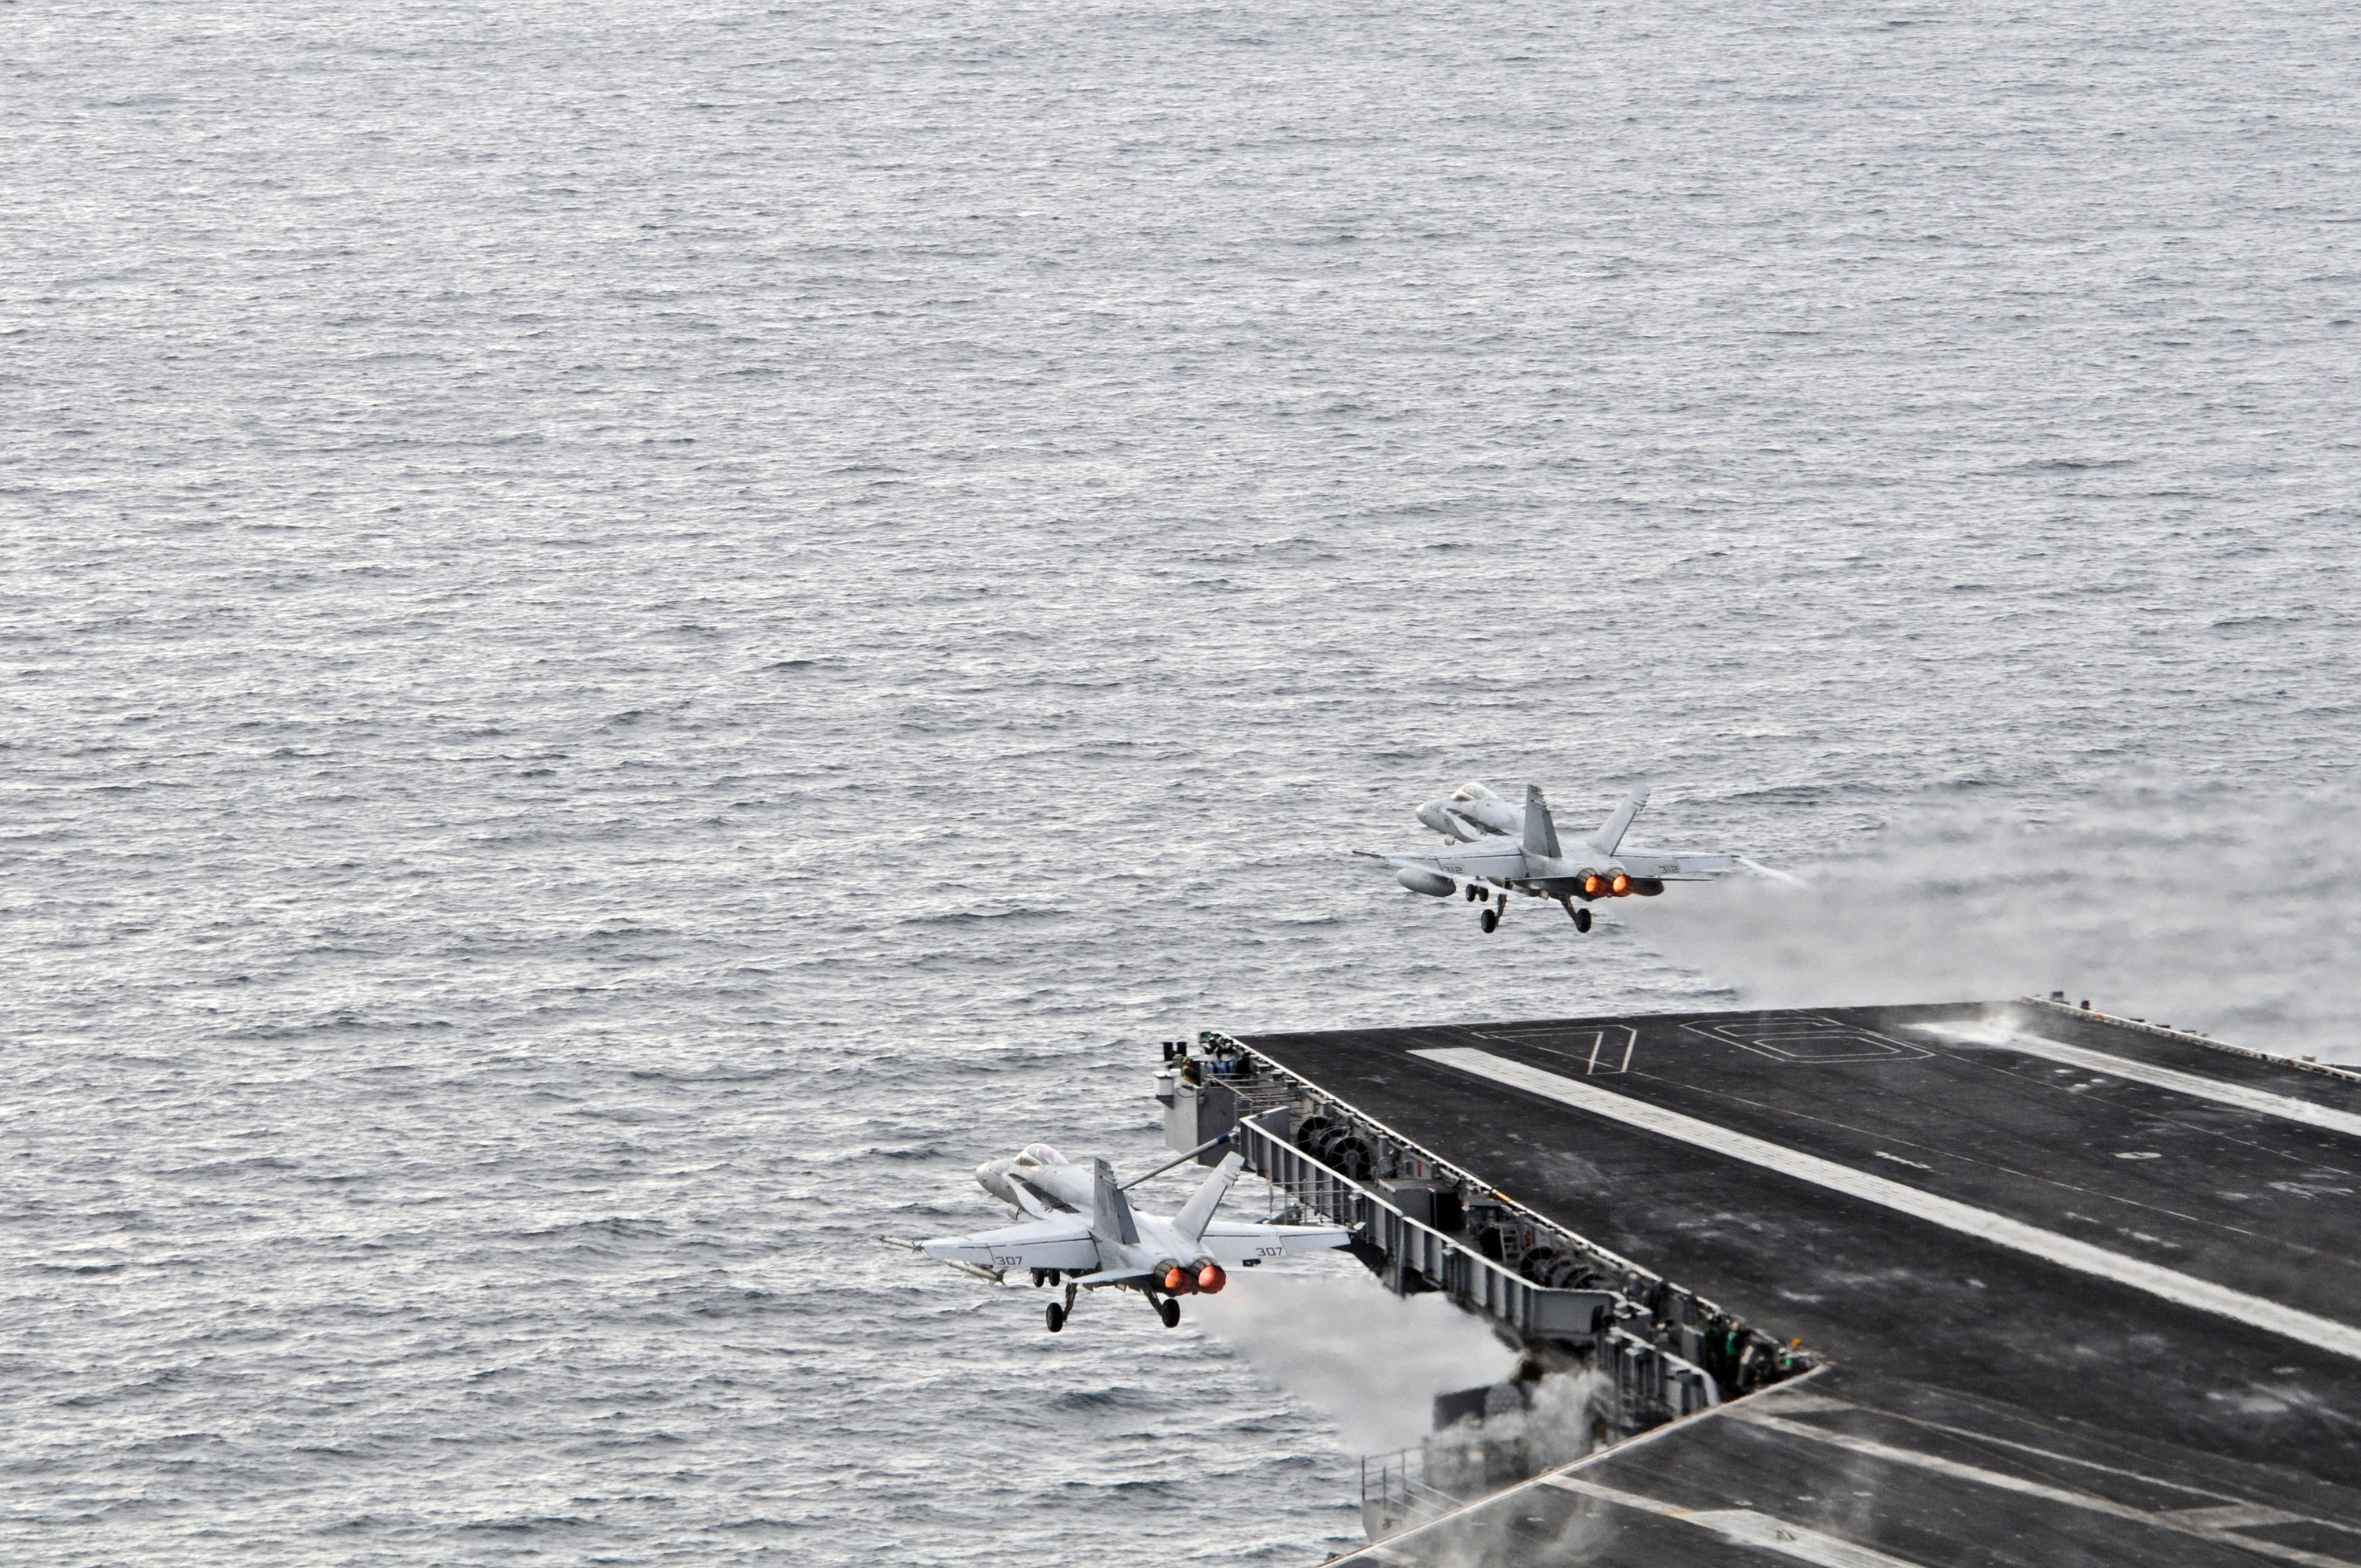 Jets Taking Off From The Flight Deck Of An Aircraft